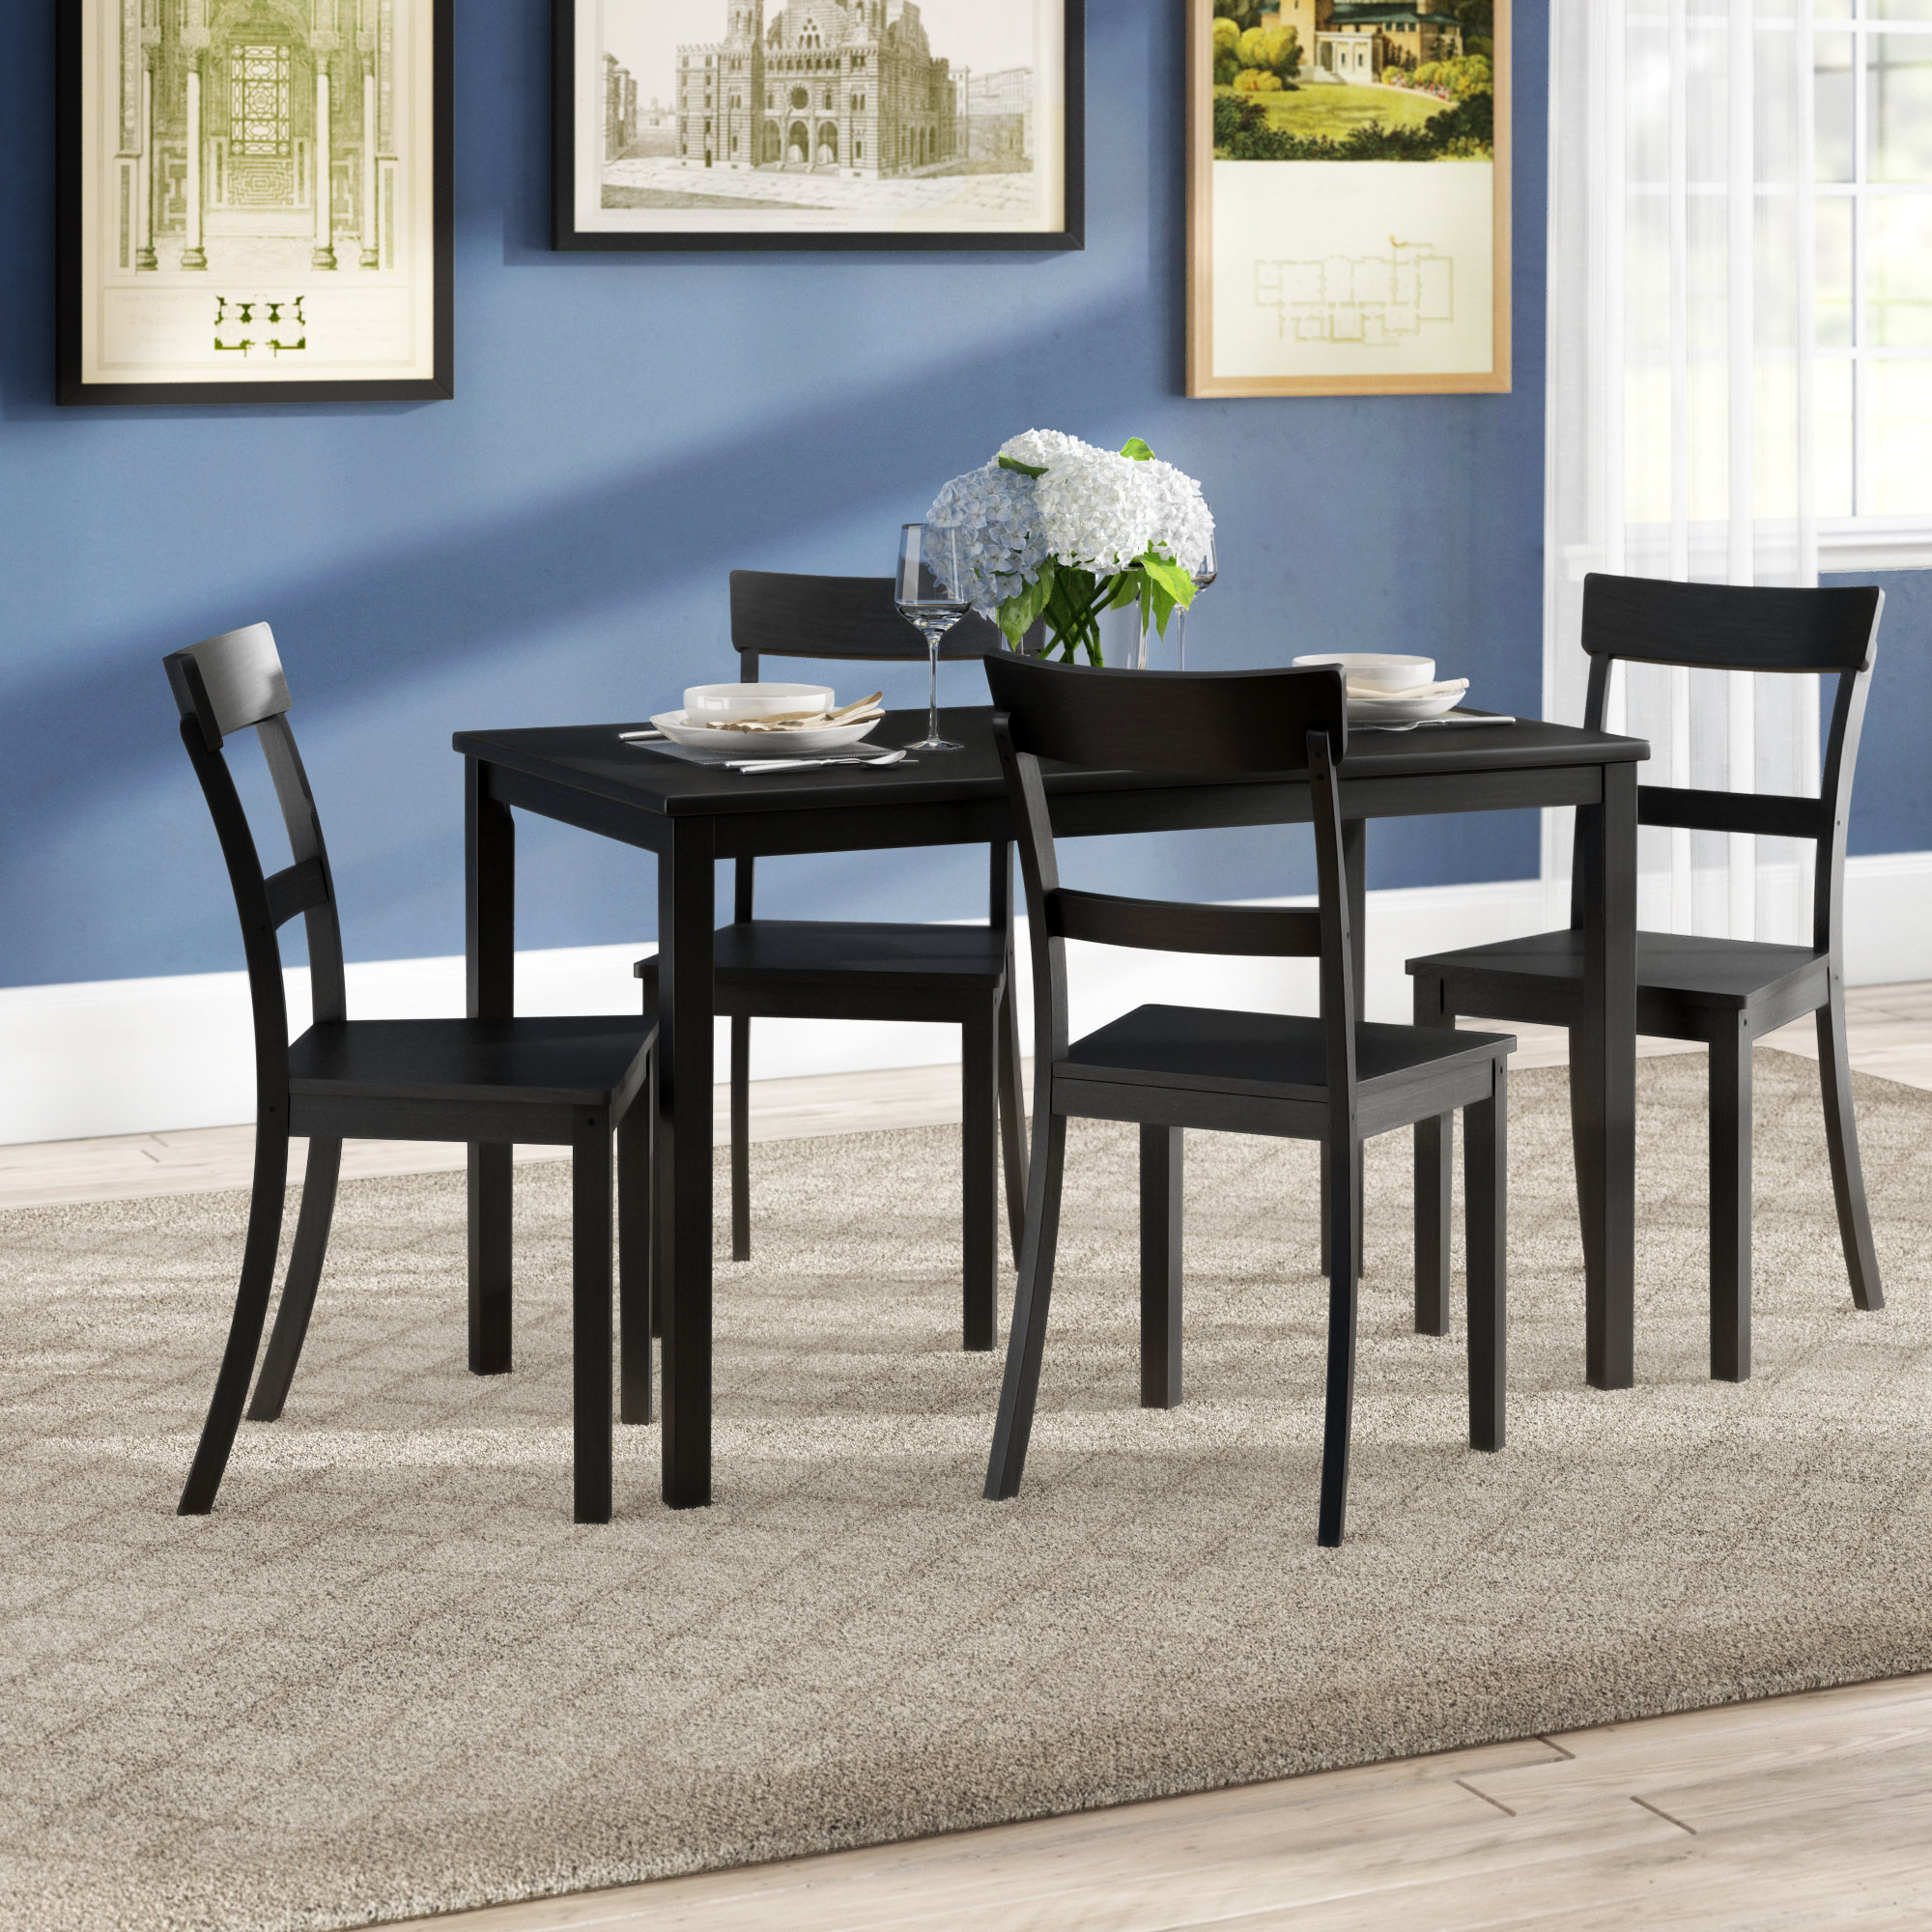 Ackworth 5 Piece Dining Set Pertaining To Most Current Sundberg 5 Piece Solid Wood Dining Sets (Image 1 of 20)